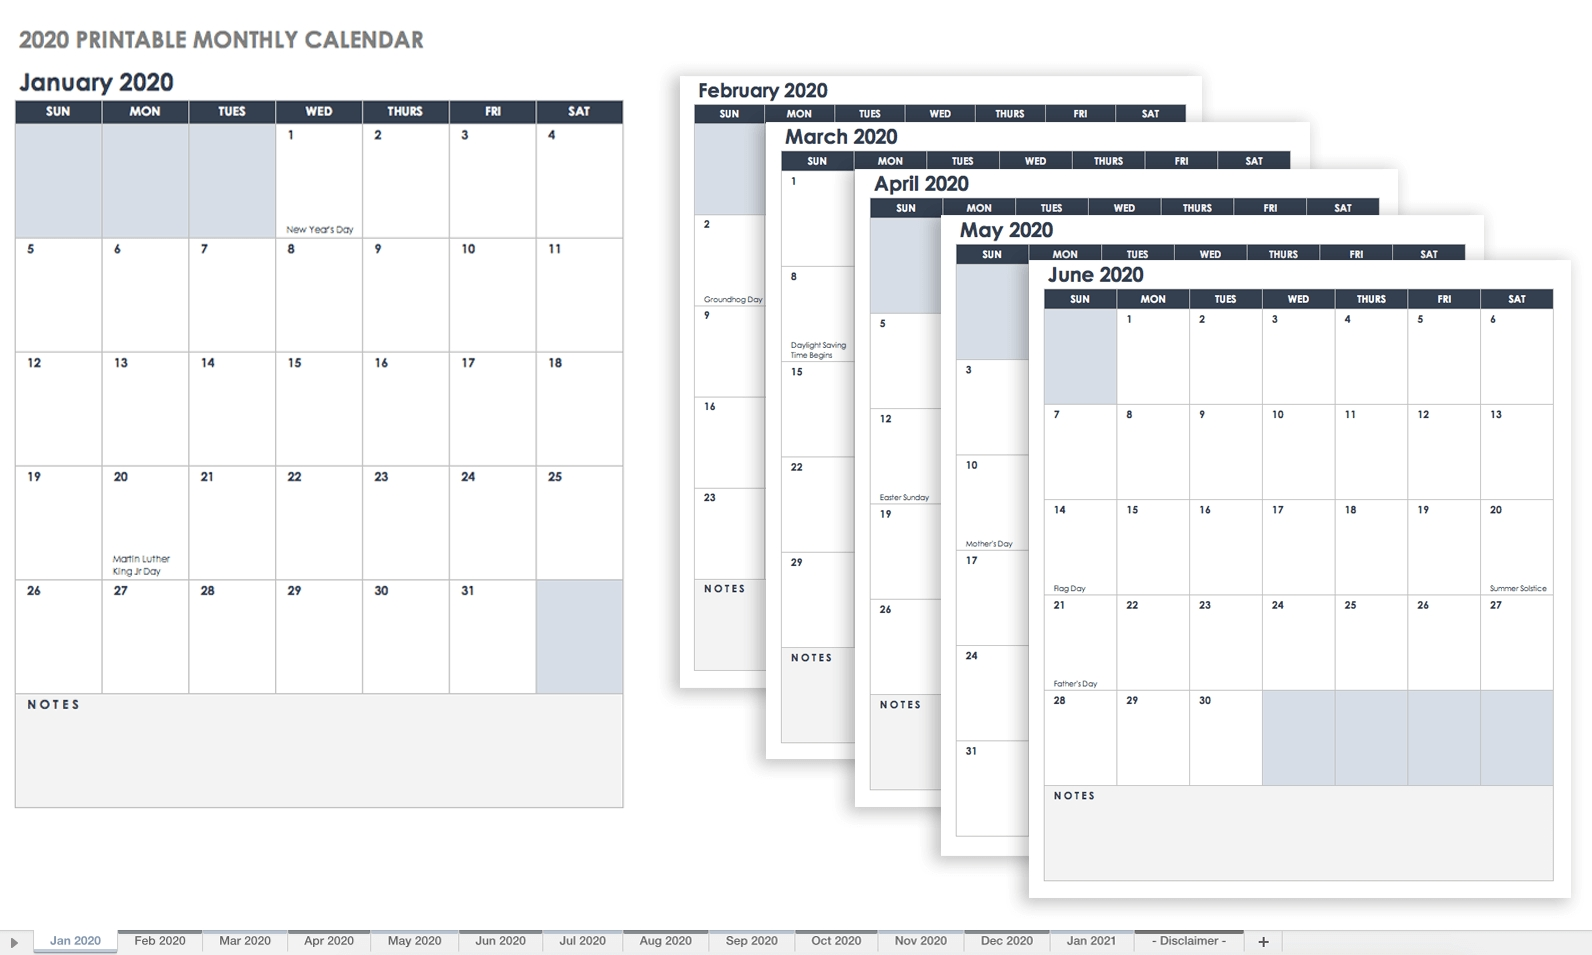 Free, Printable Excel Calendar Templates For 2019 & On | Smartsheet for Printable Year Calendar 2019 - 2020 With Space To Write